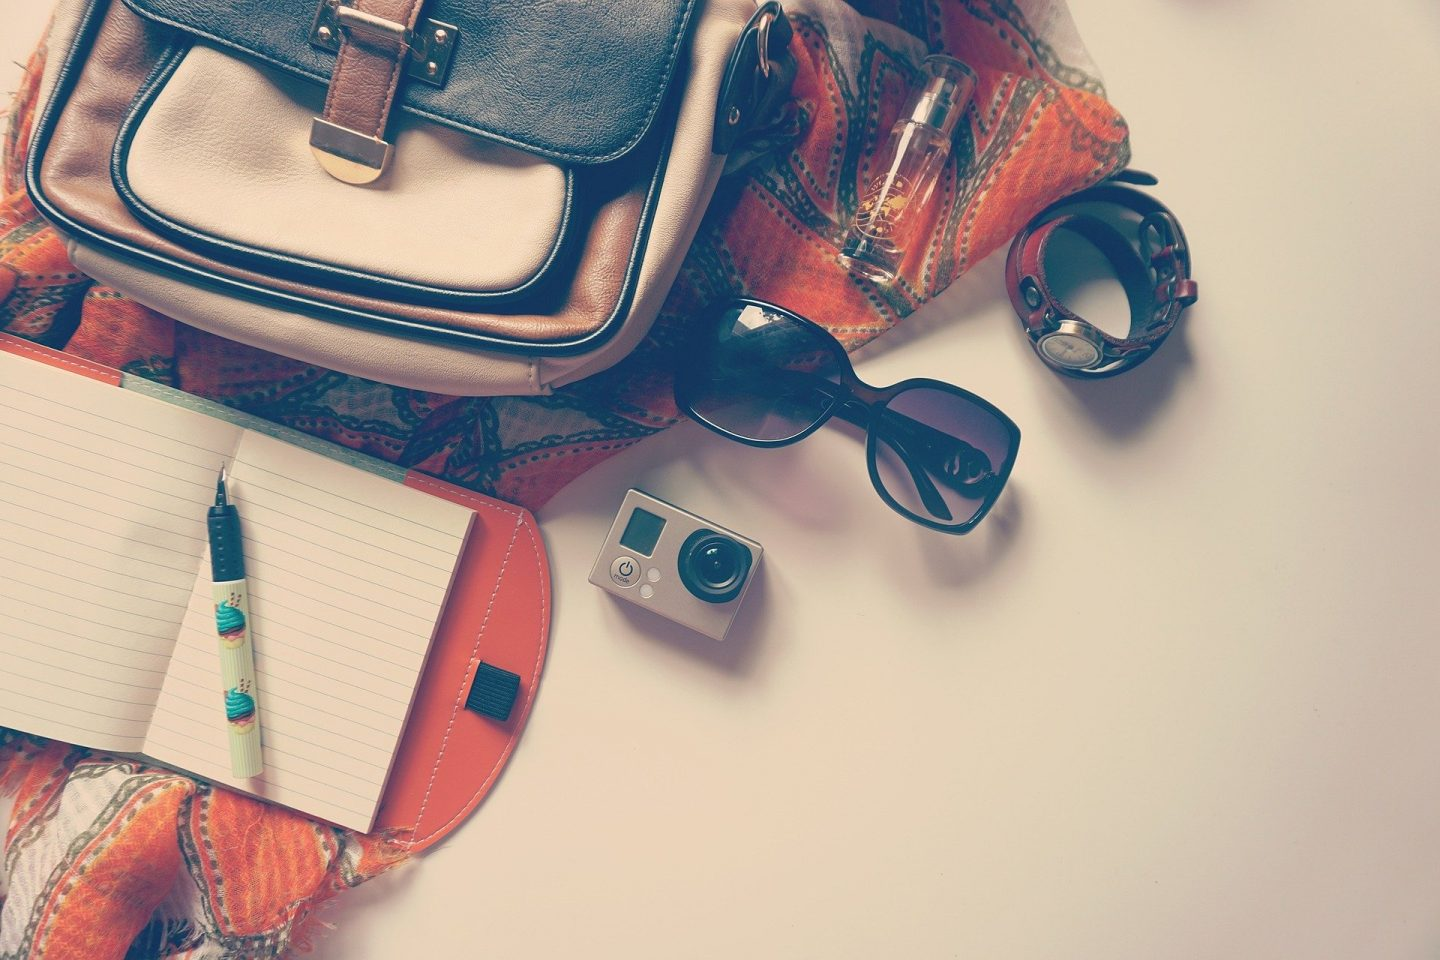 7 PACKING TIPS TO MAXIMISE FUN ON A TRIP